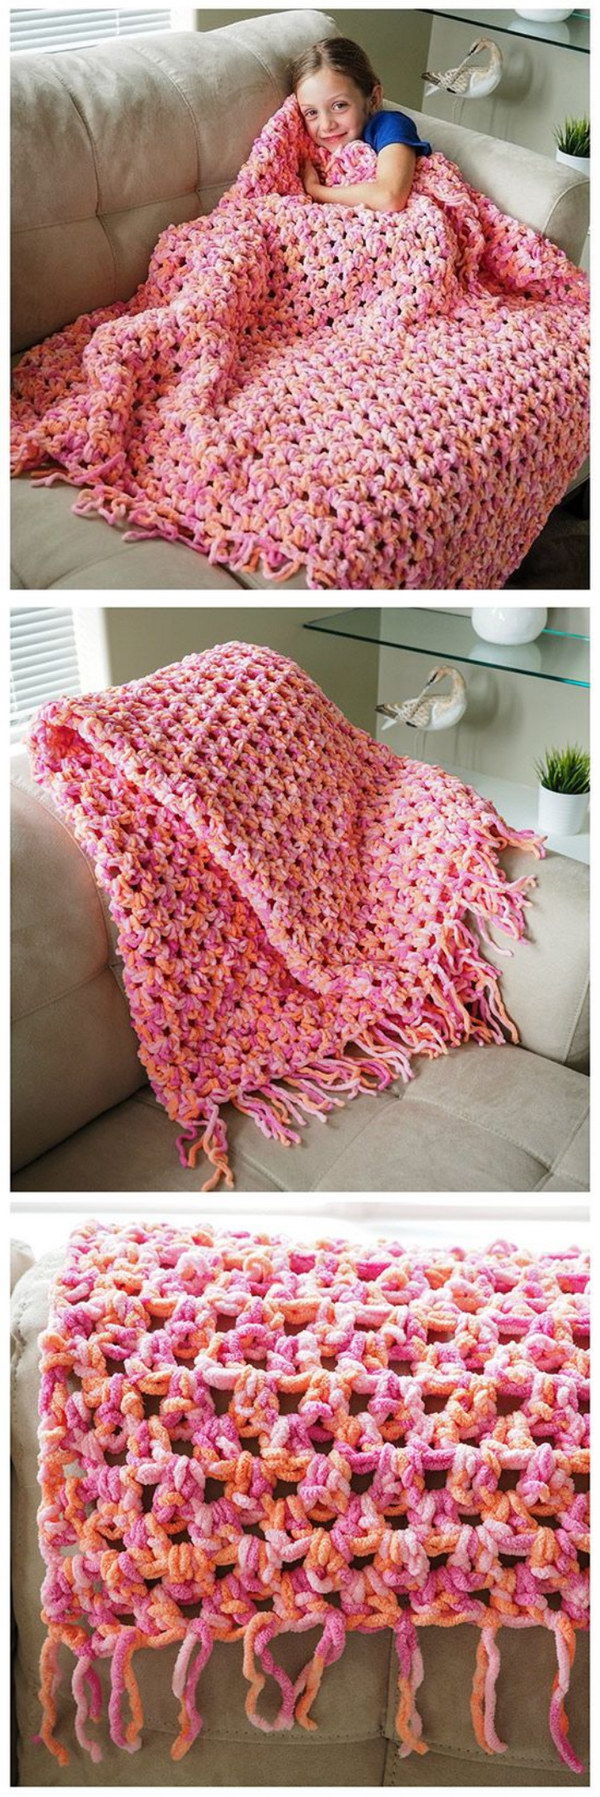 10 Beautiful Crochet Blankets with Free Patterns